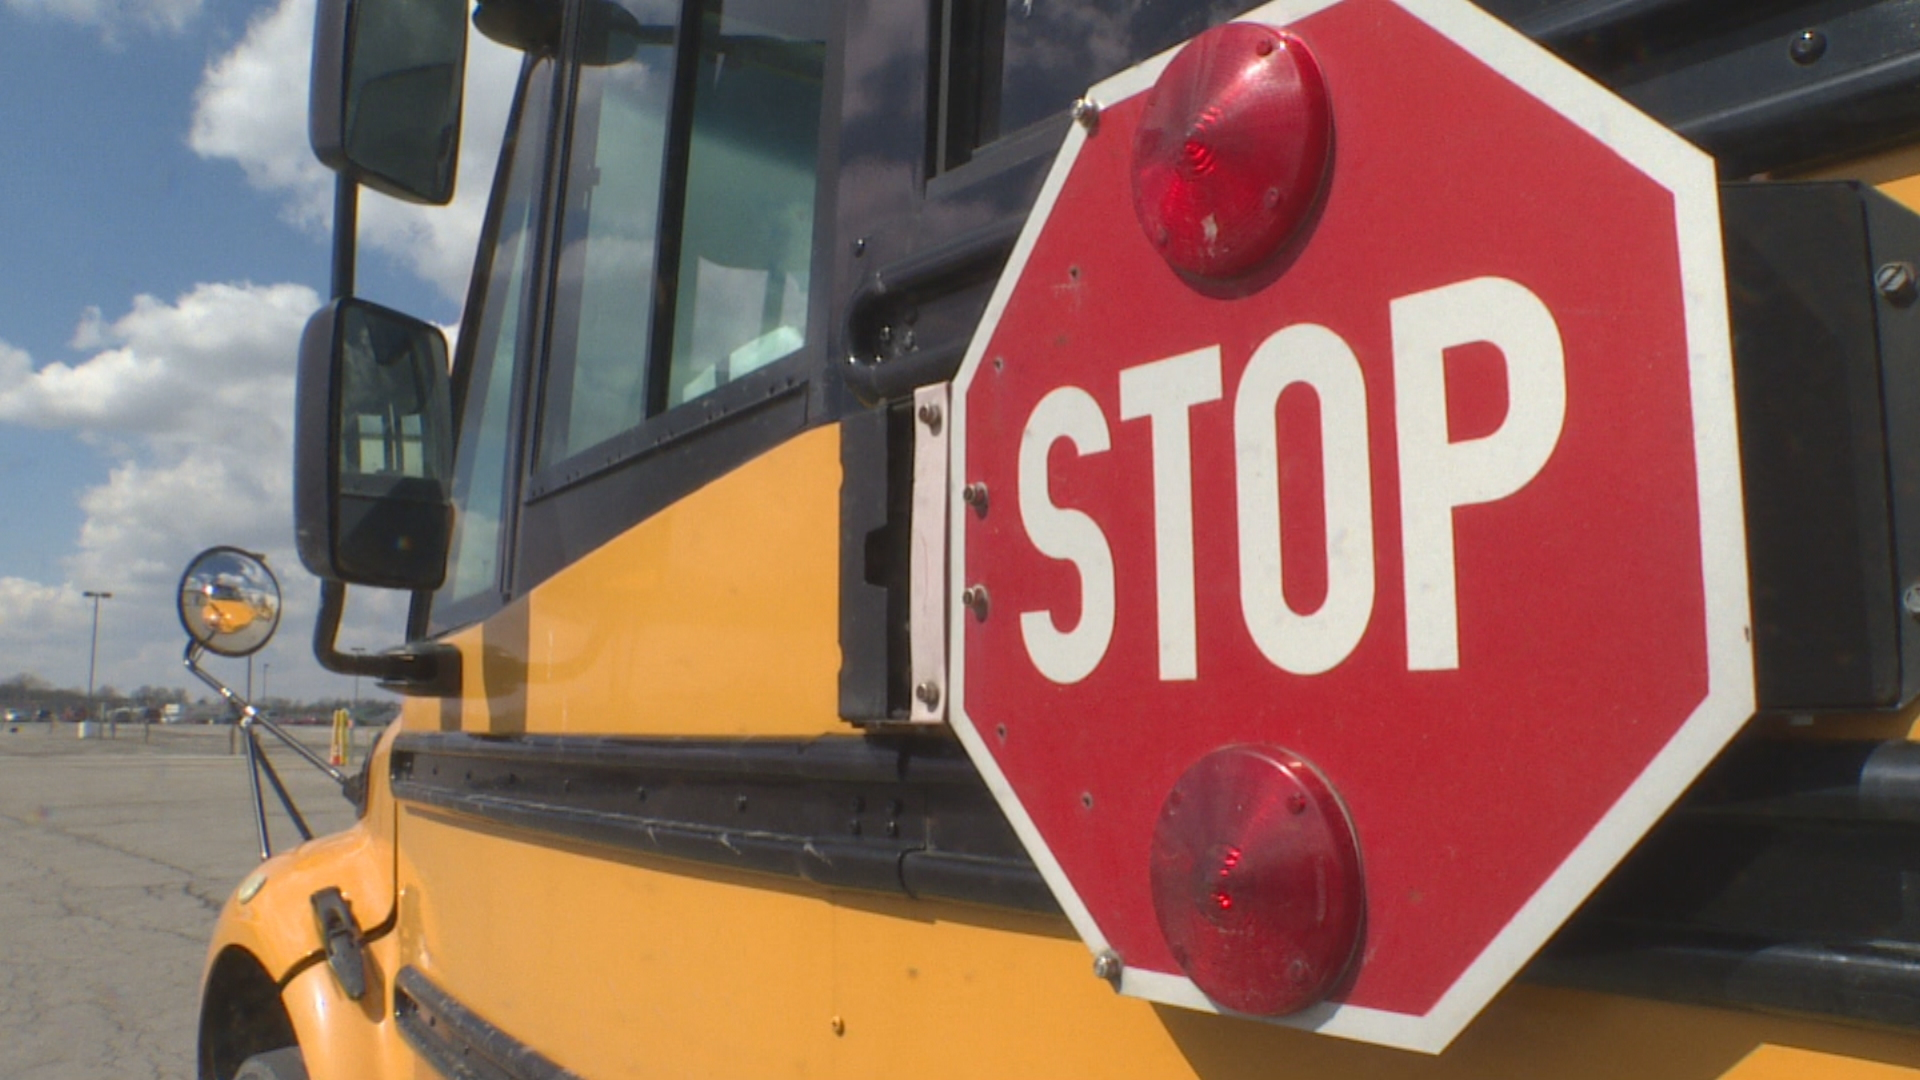 Bill would help Indiana school districts pay for bus cameras